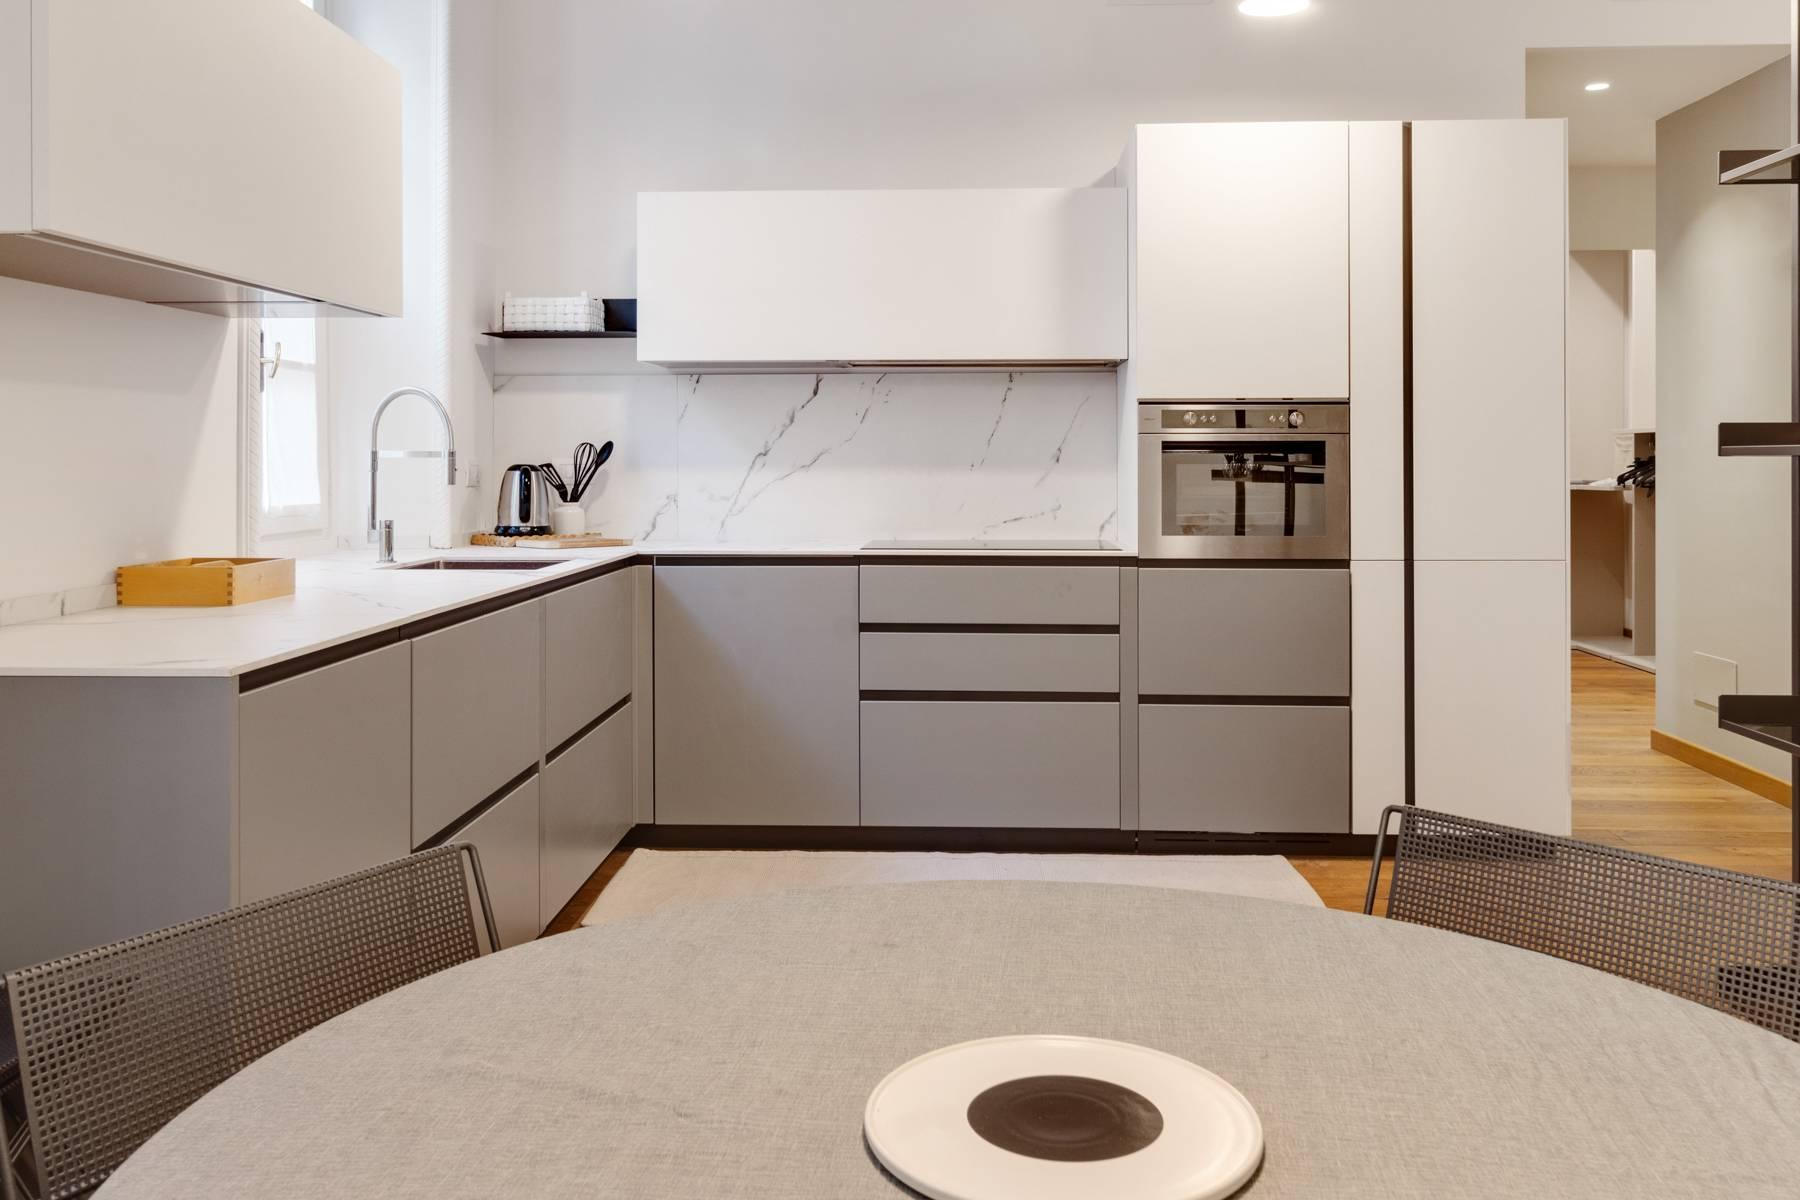 New apartment fully furnished in the center of Turin - 17